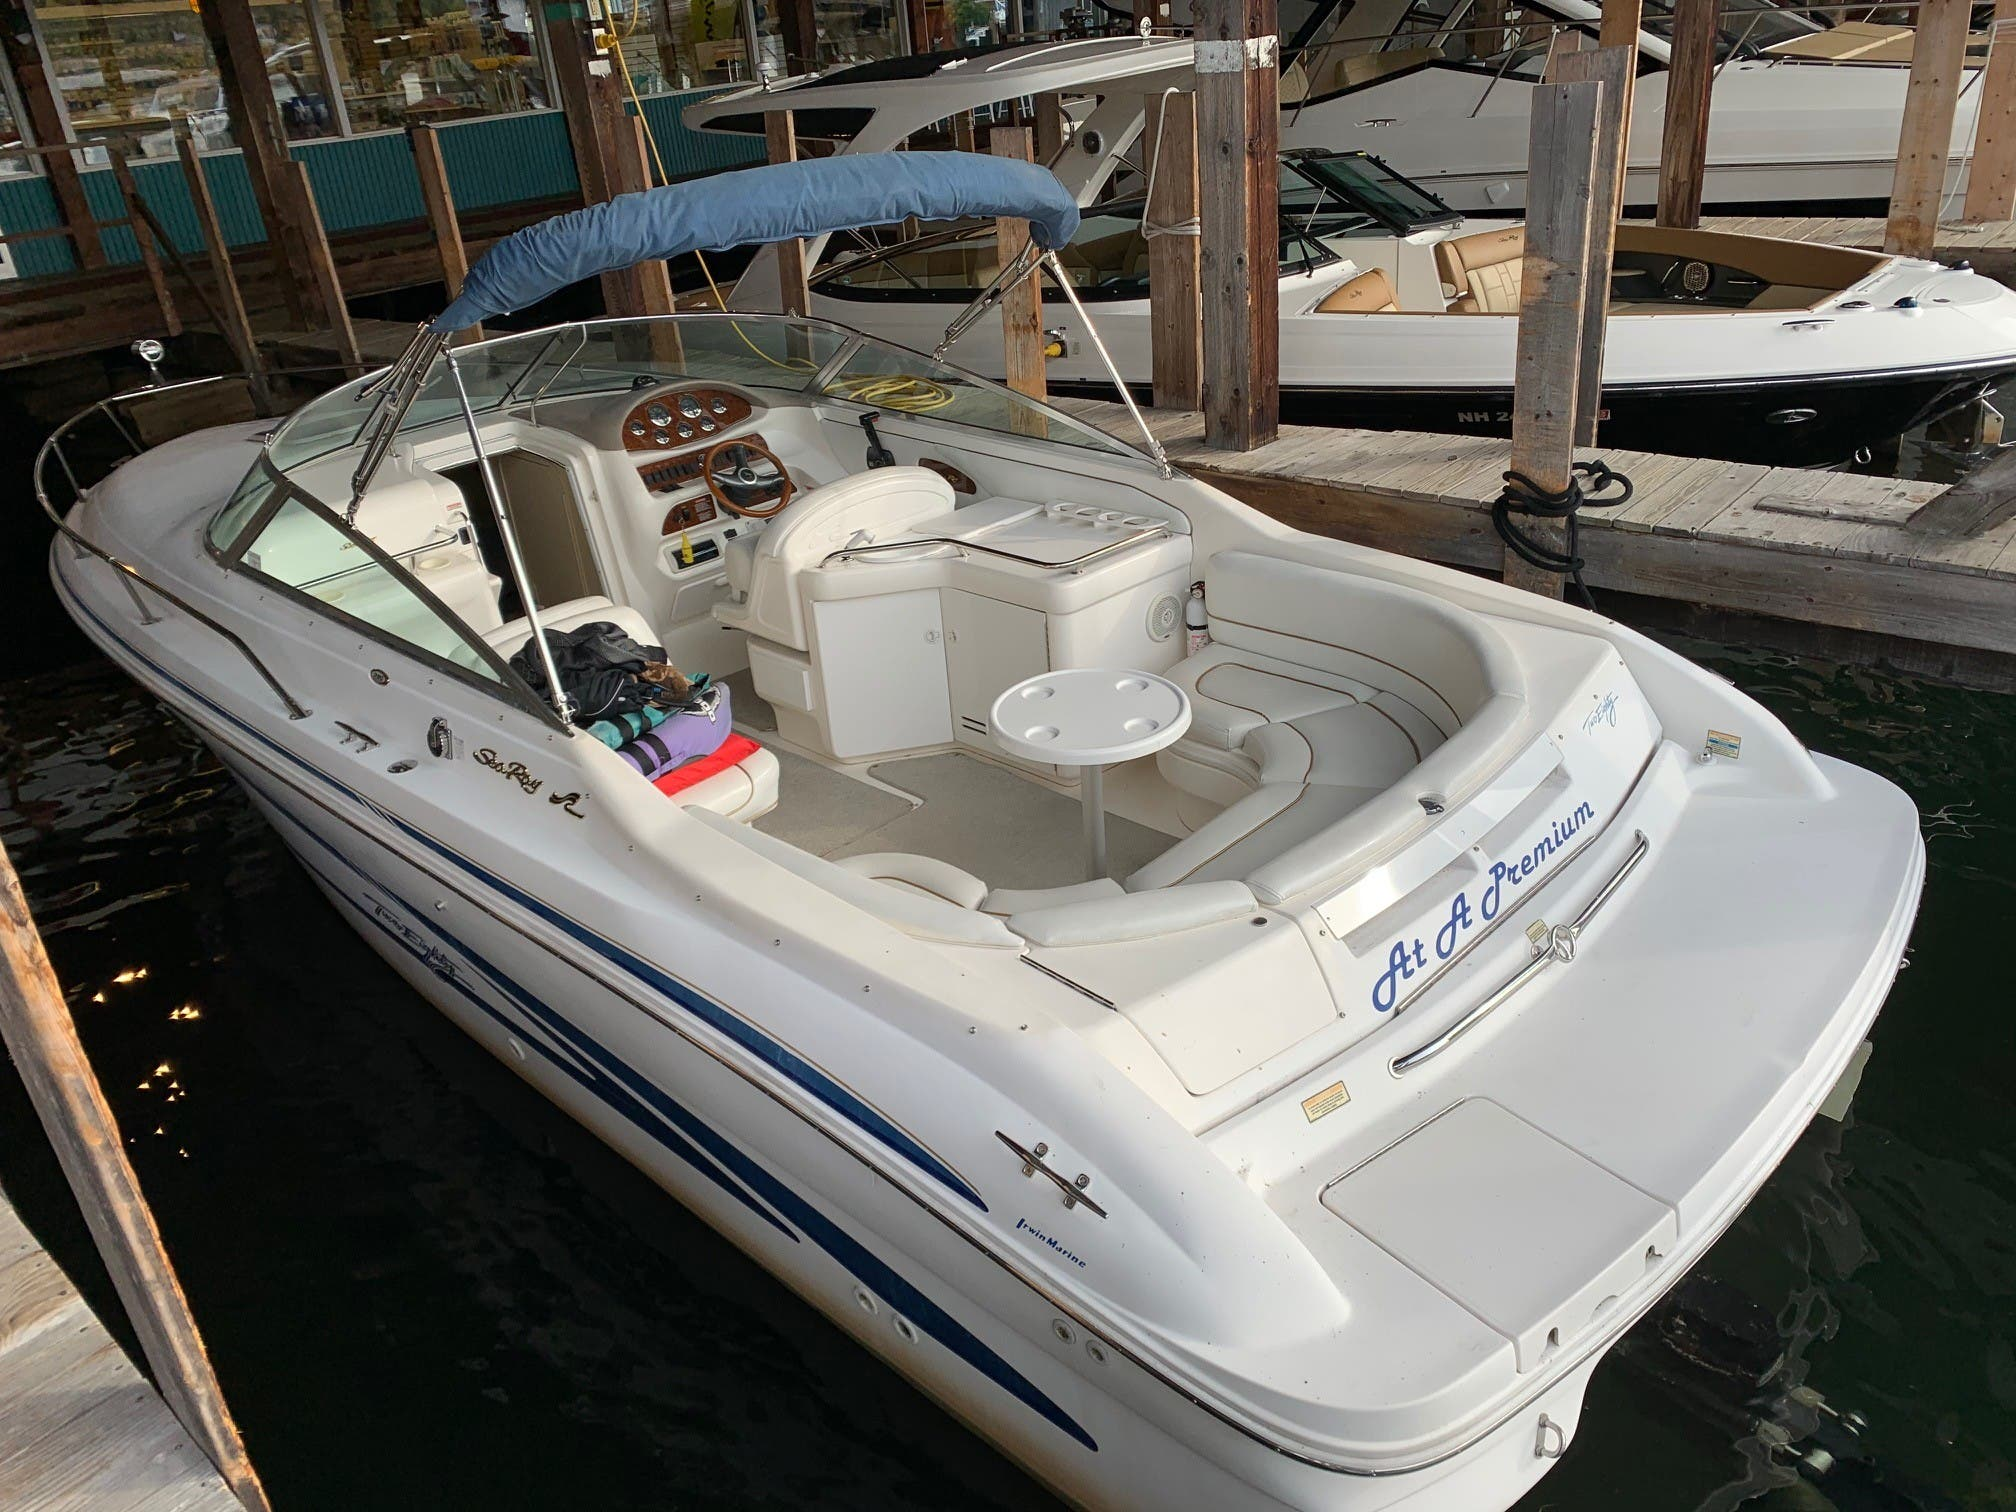 1998 Sea Ray boat for sale, model of the boat is 280 Sunsport & Image # 3 of 11